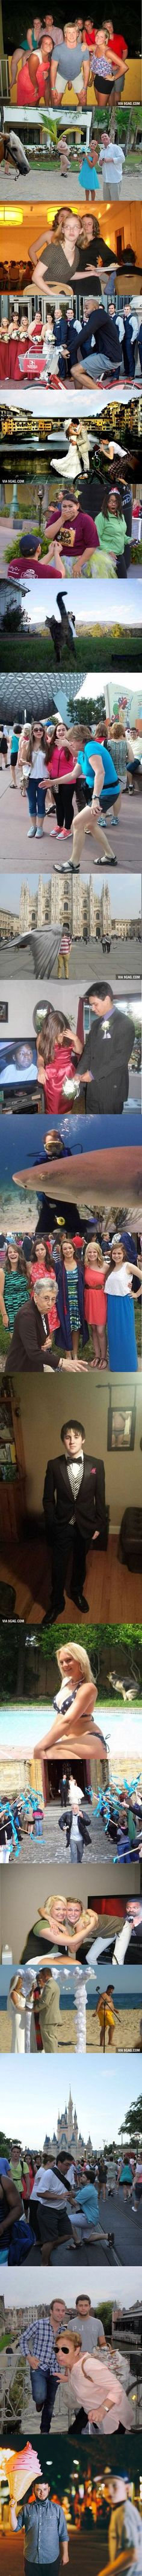 The 20 Majestic Accidental Photobomb